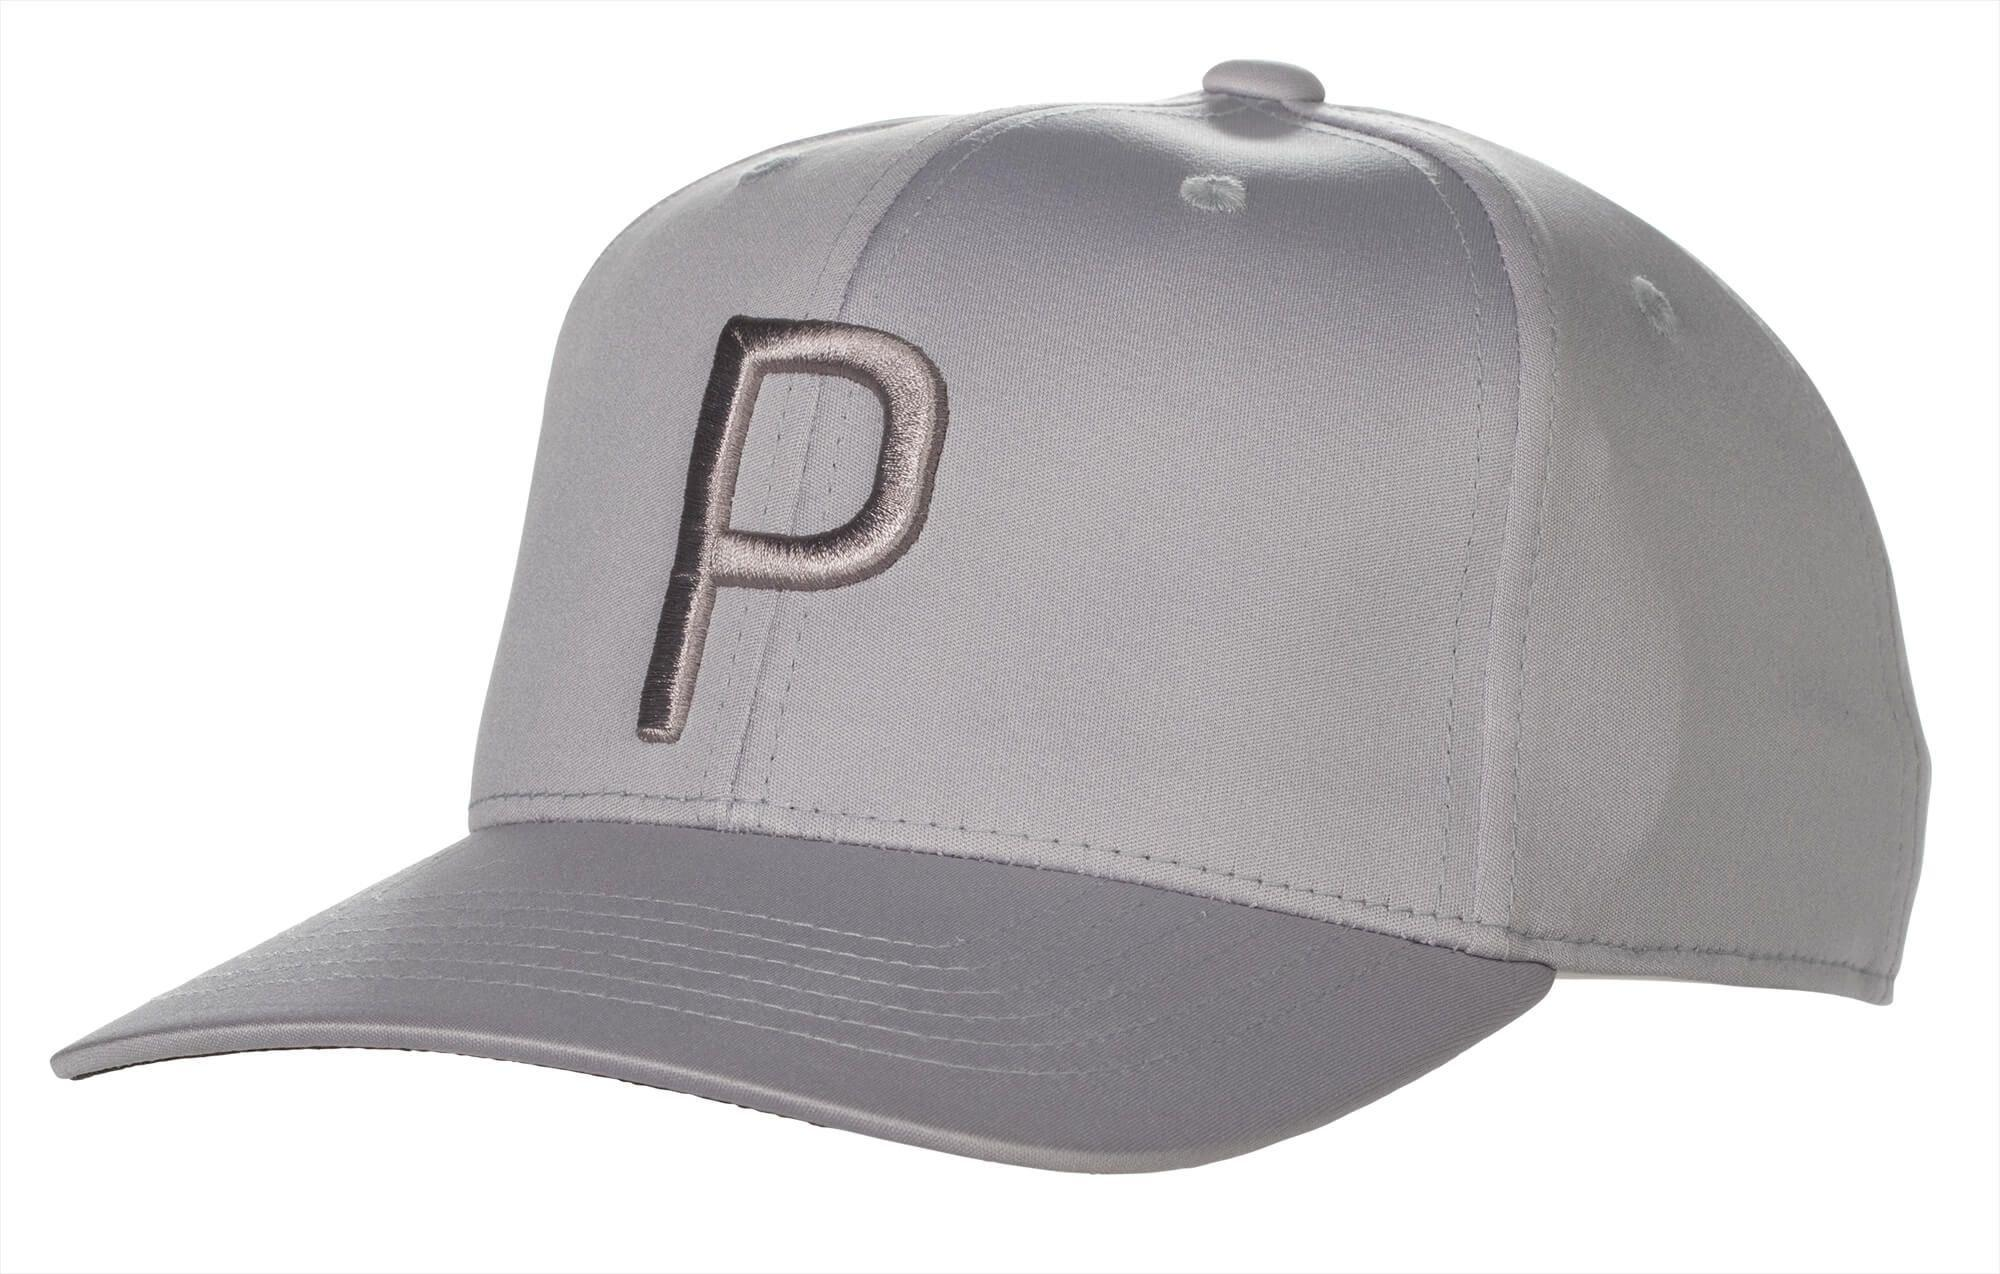 amistad Buscar administración  Puma Golf P 110 Snapback Hat ON SALE - Carl's Golfland